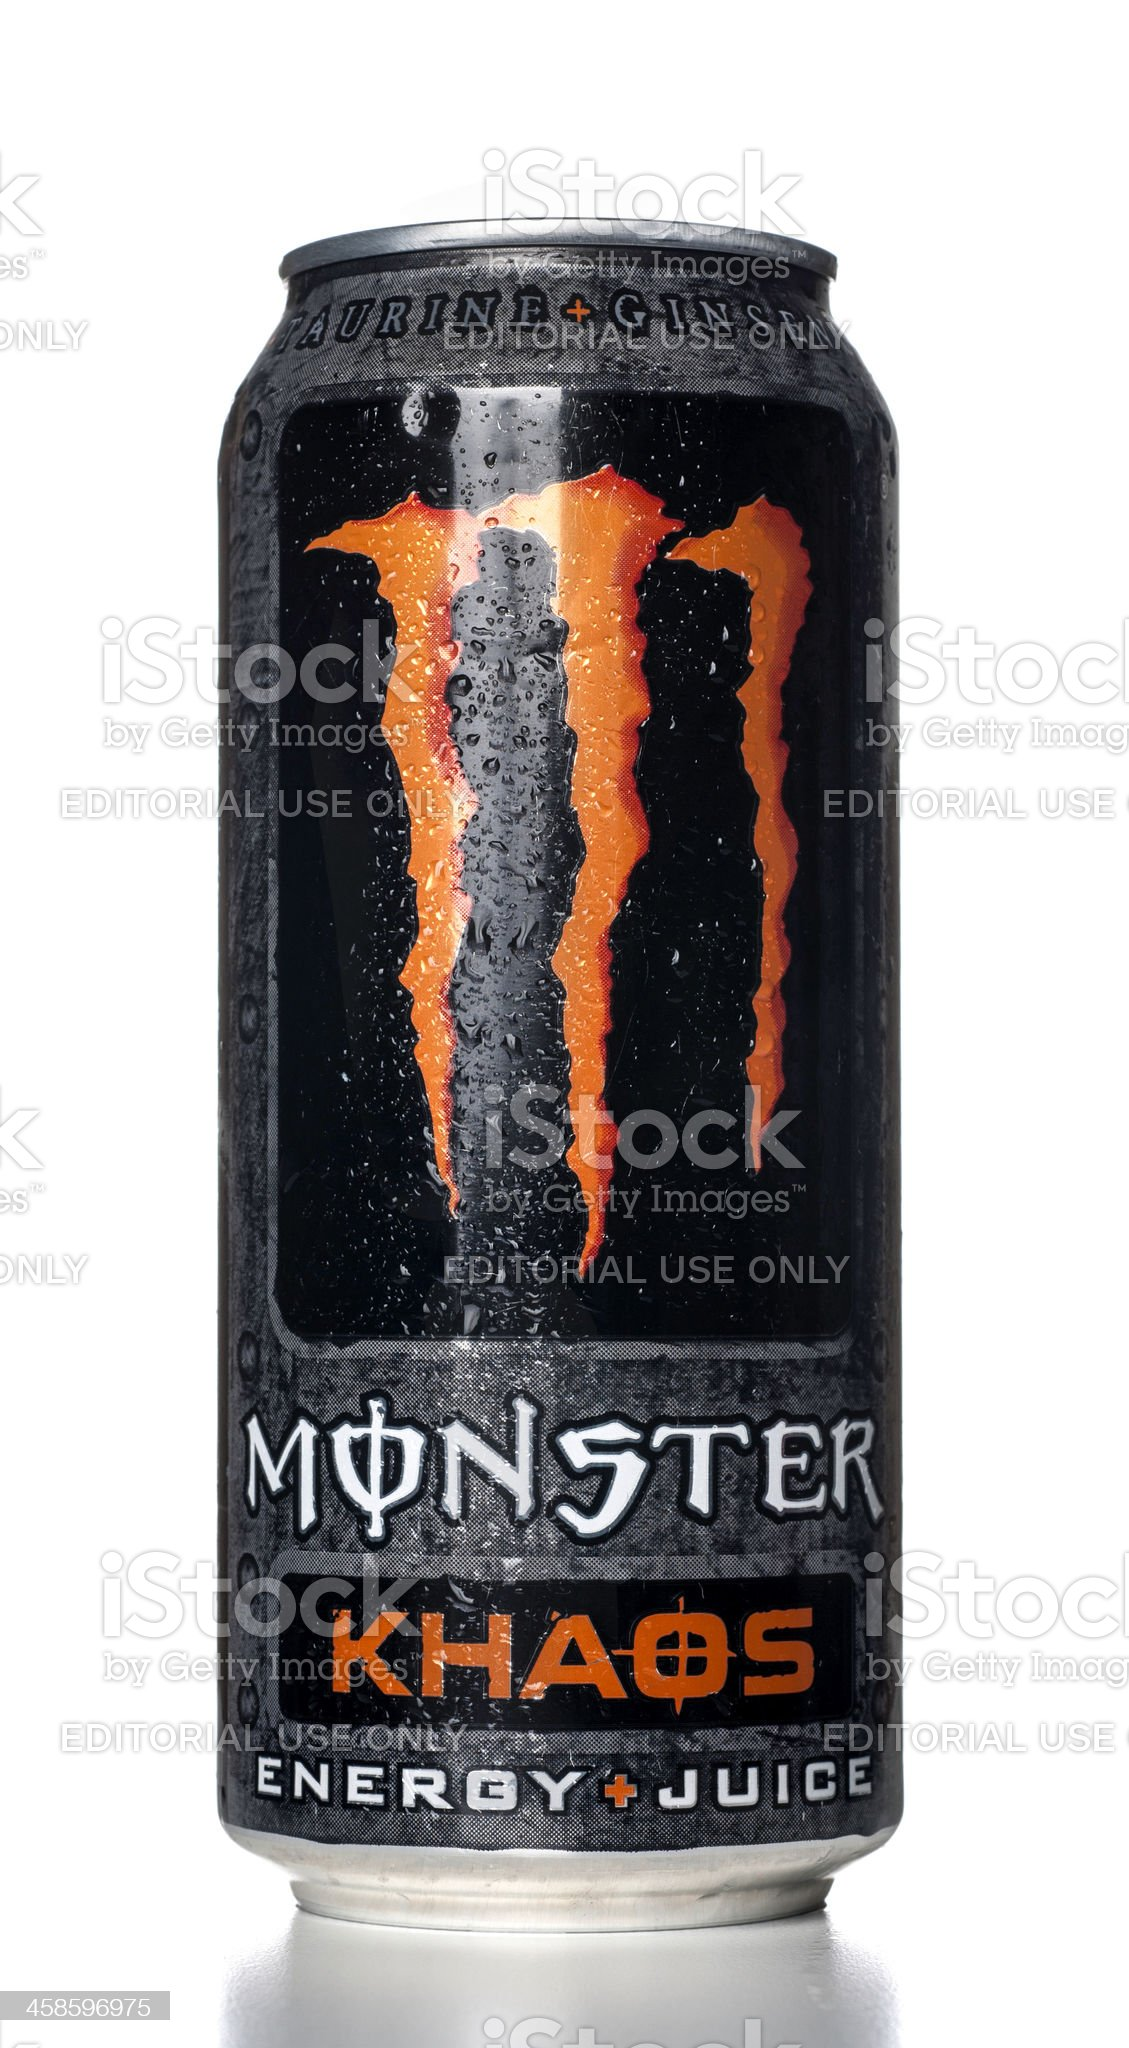 Monster Khaos Energy Drink can with water drops royalty-free stock photo